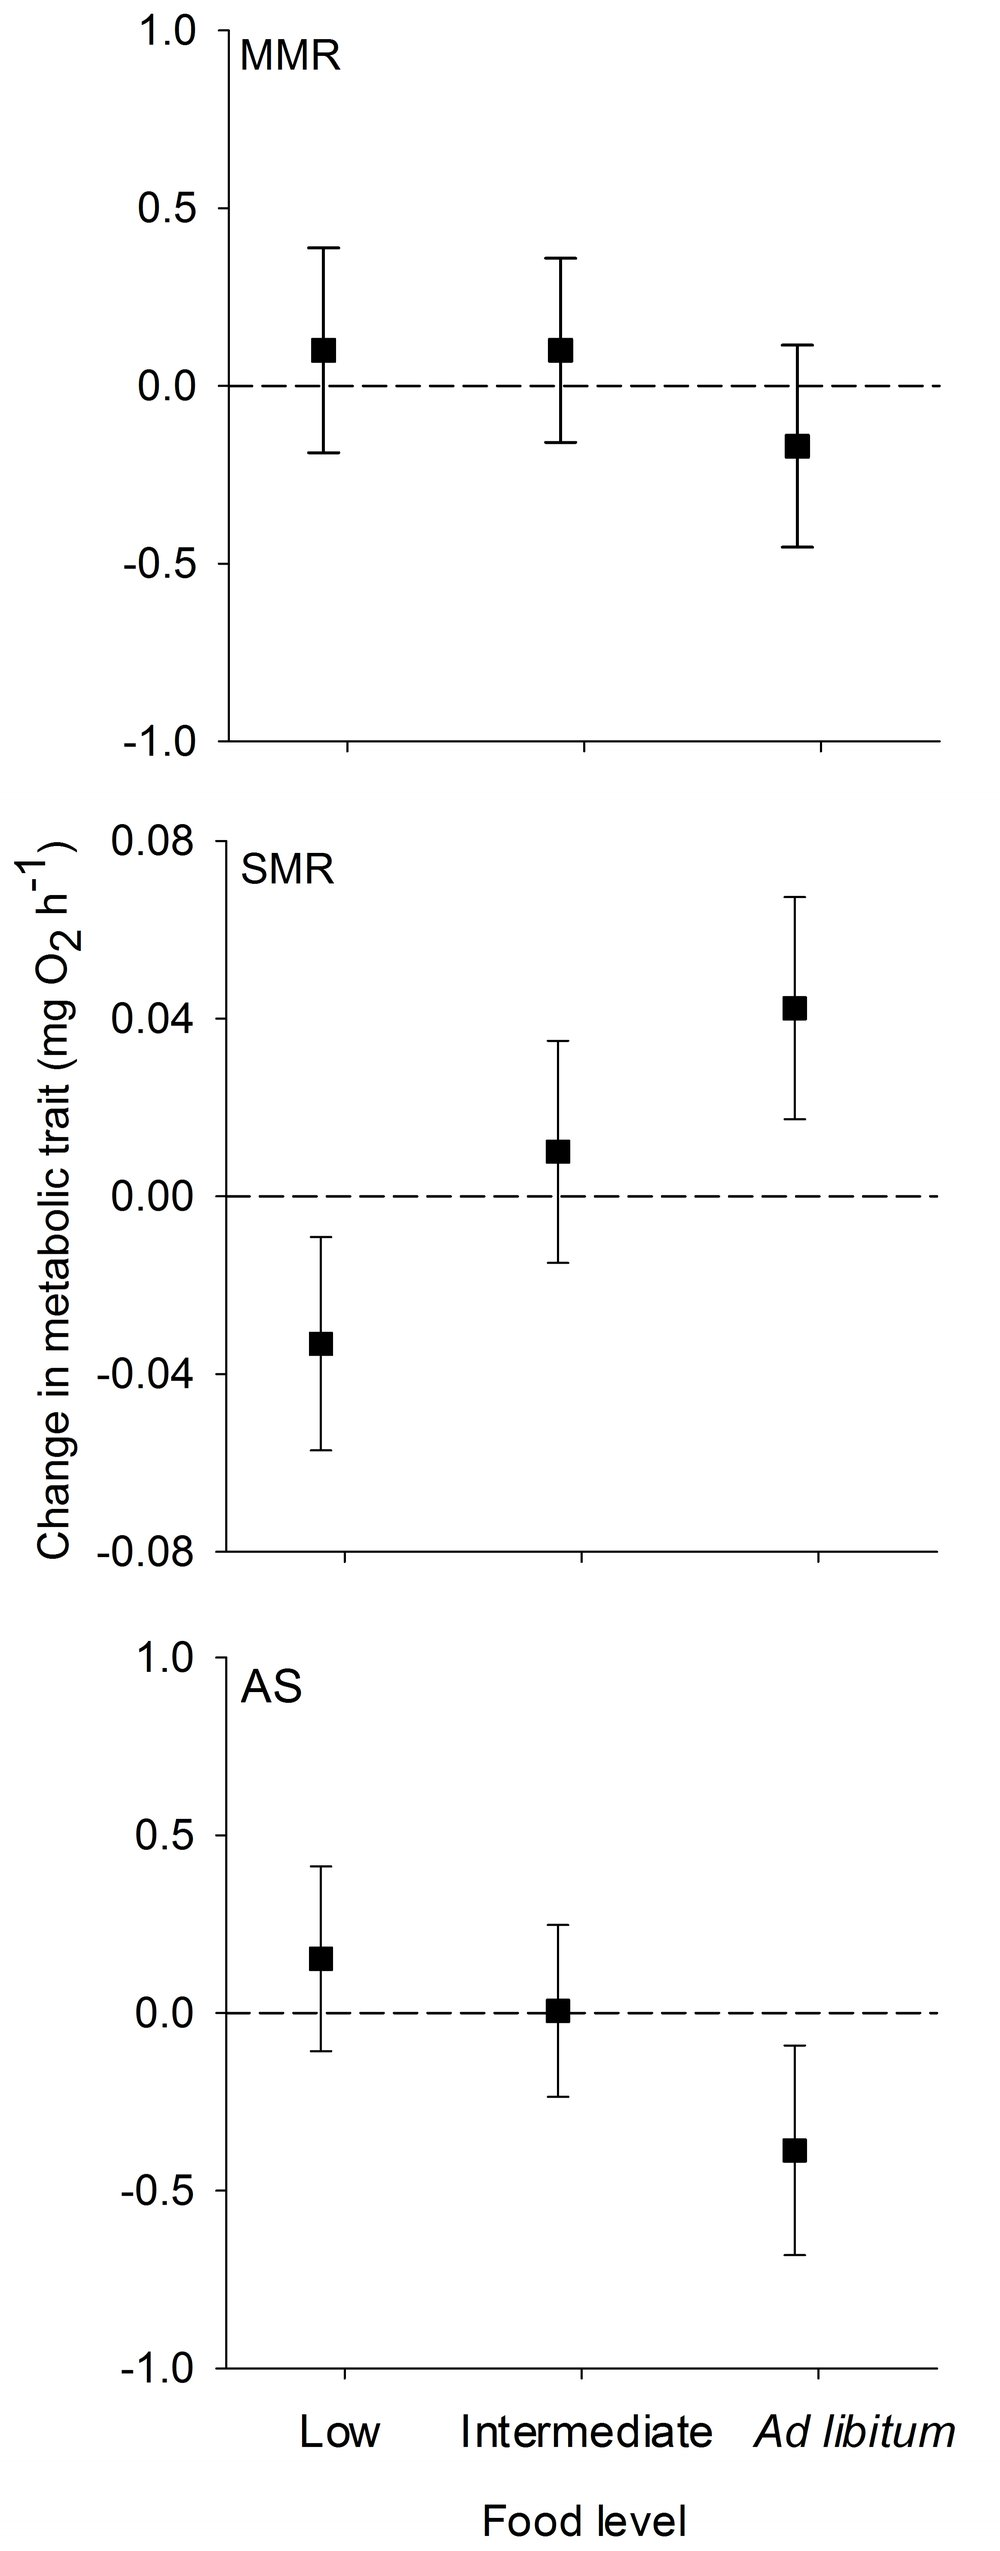 Change in maximum metabolic rate (MMR), standard metabolic rate (SMR), and aerobic scope (AS) of juvenile brown trout as a function of changing food availability.